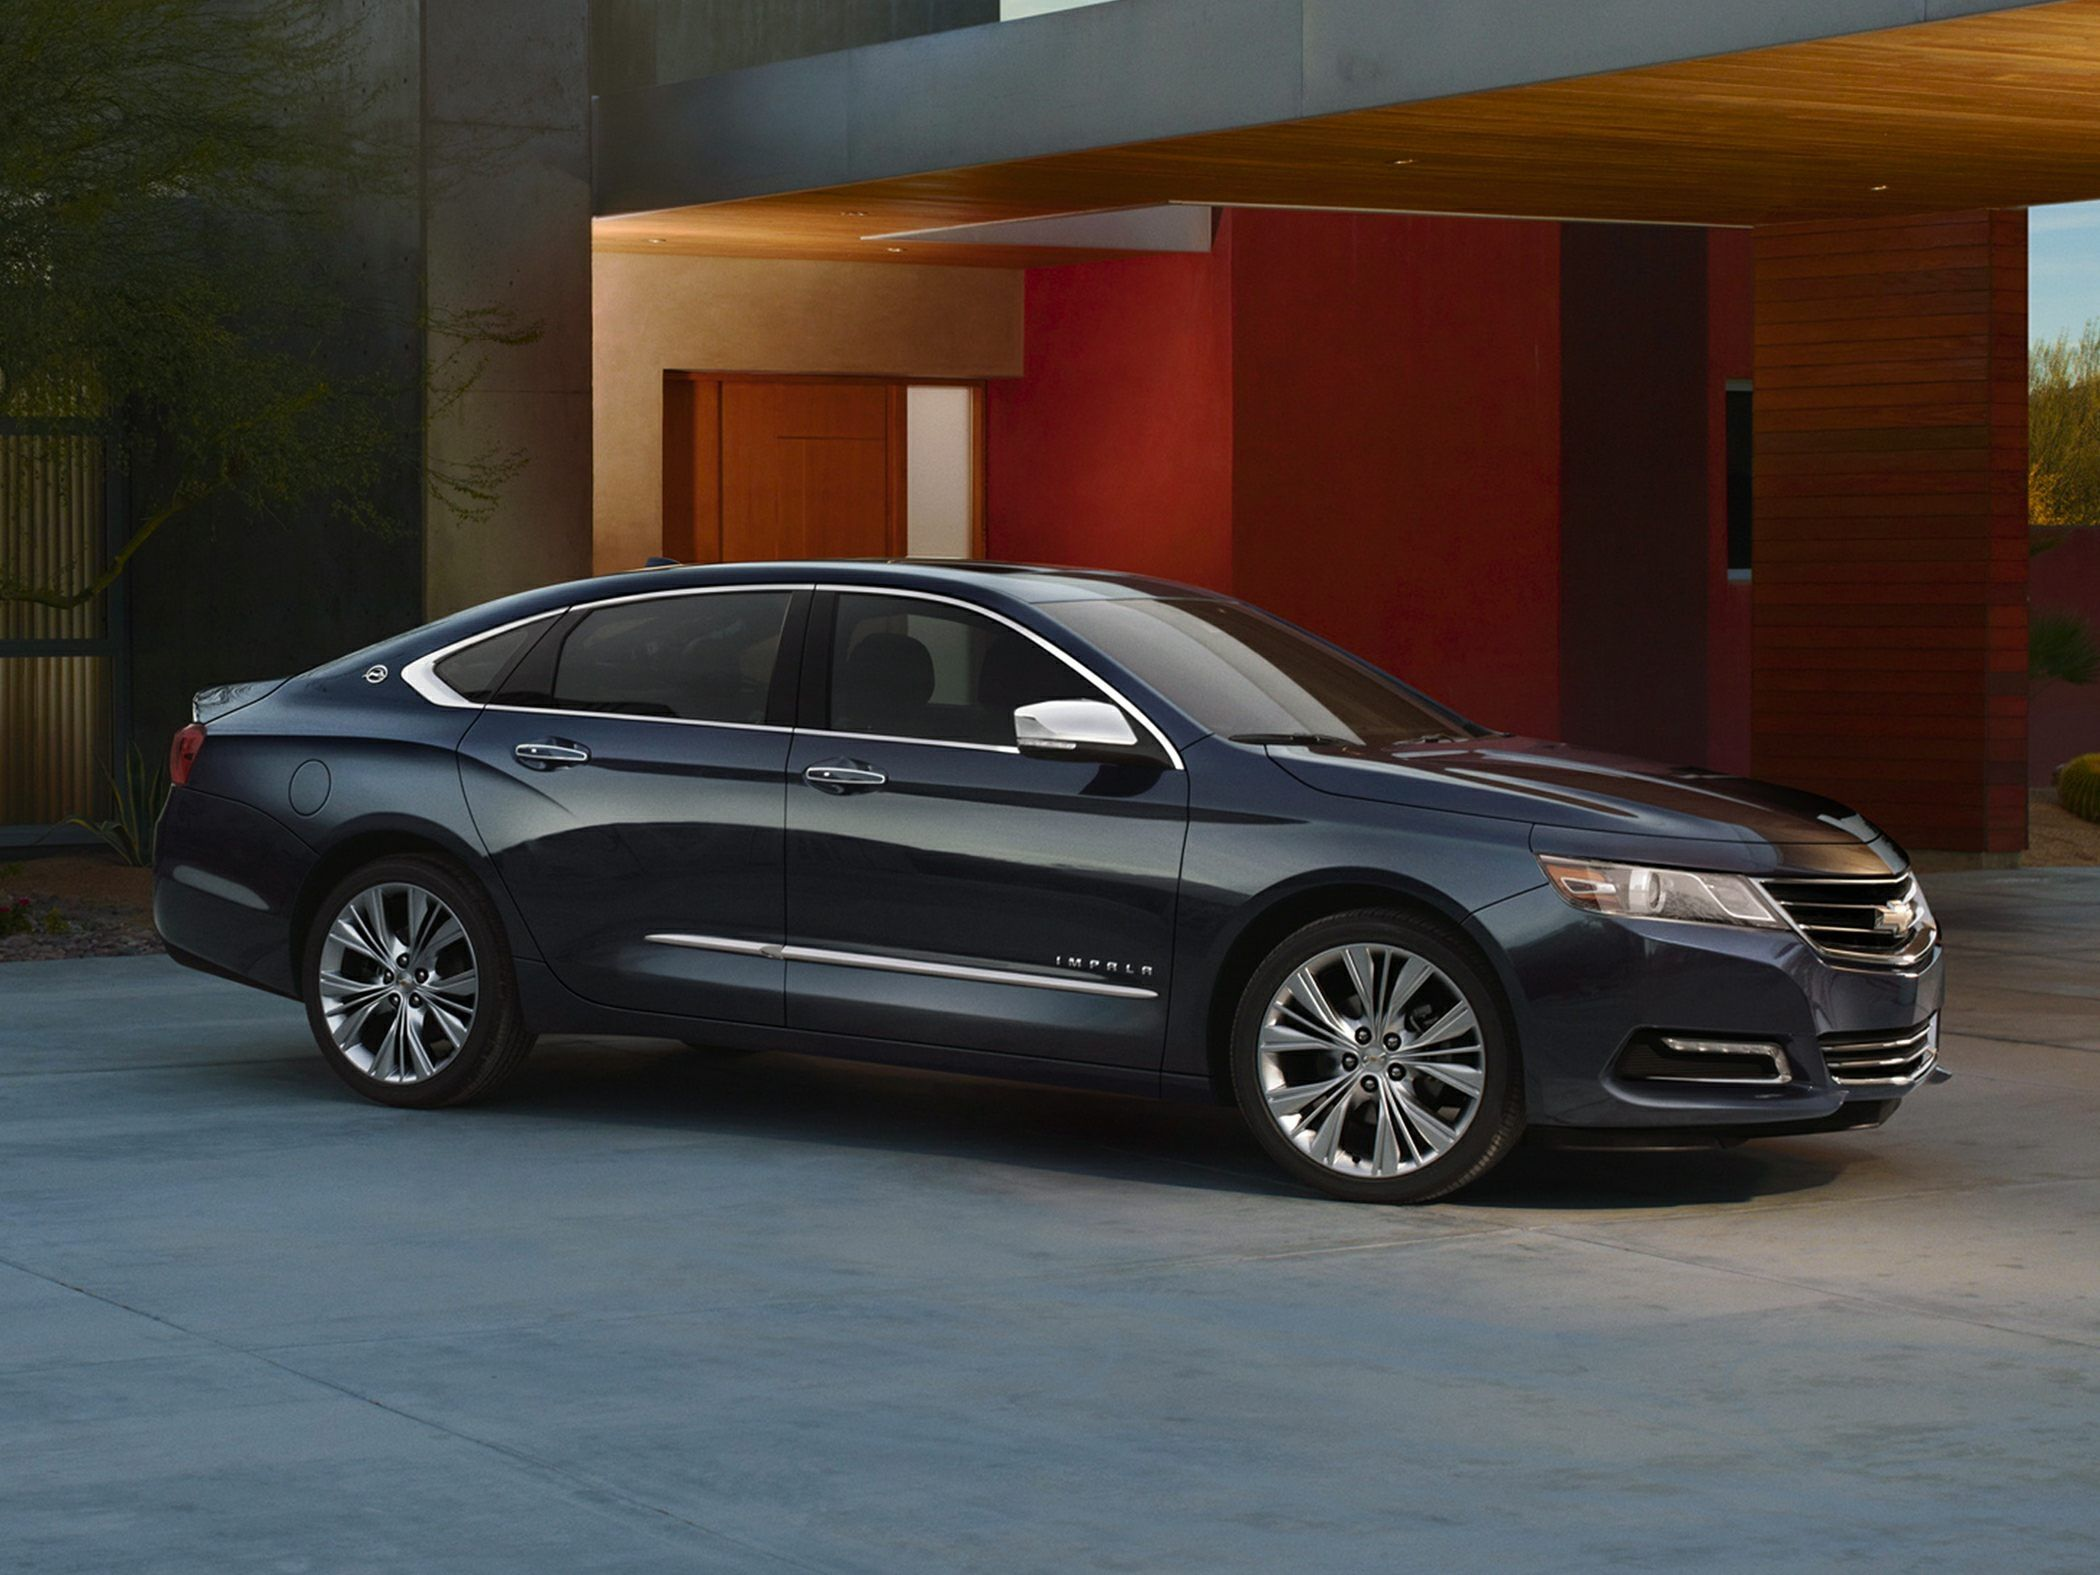 2019 Chevrolet Impala Mpg Review Specs And Release Date Car Review 2019